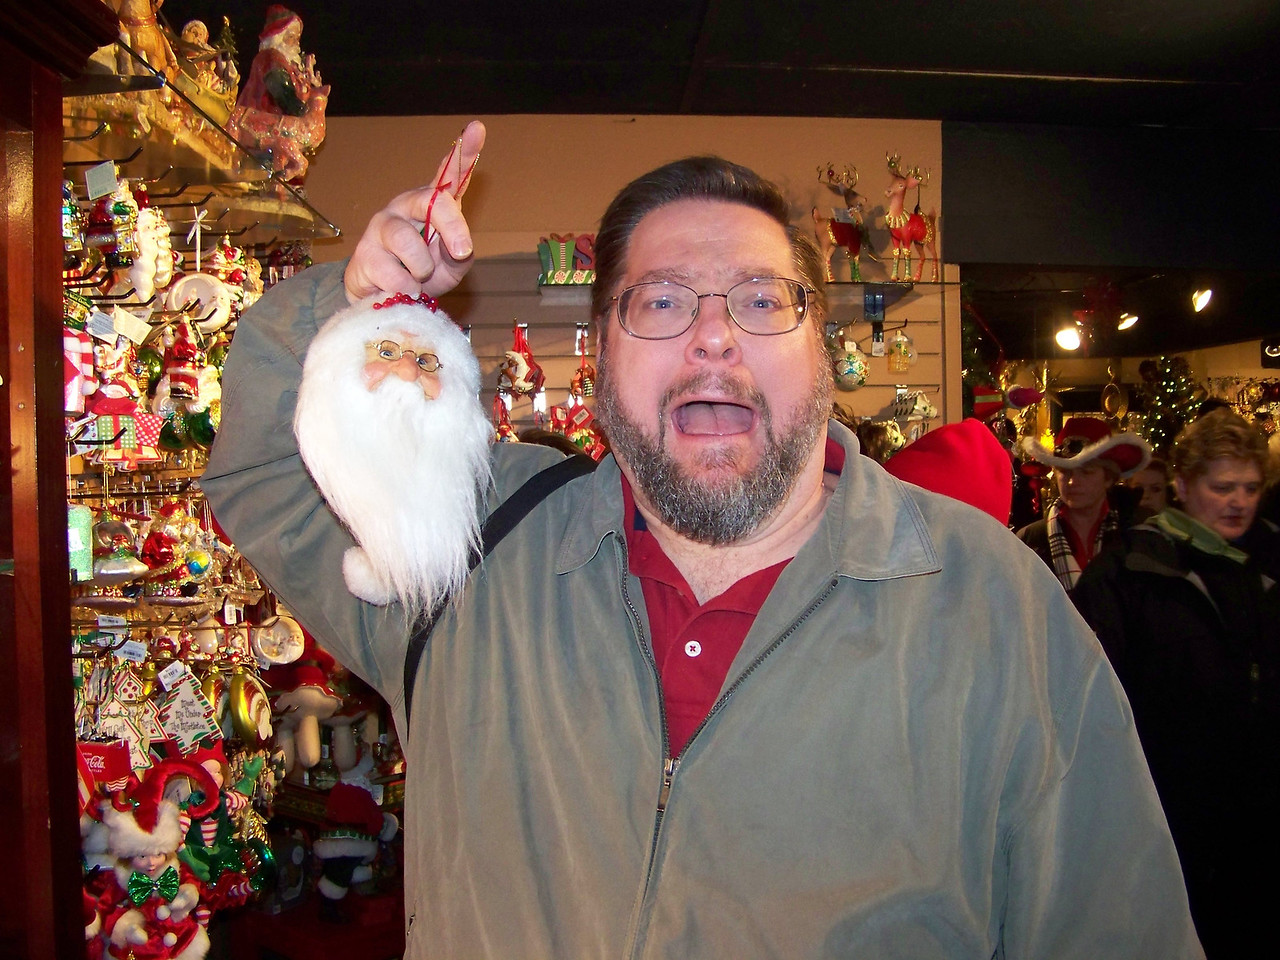 """Jon is horrified to discover the severed and shrunken head of Santa!!!  (Or maybe that's just a disturbingly large ornament at the Kris Kringl Christmas shop.) [Leavenworth, WA - December 2013 - <b><a target=""""_new"""" href=""""http://youtu.be/NqCqDCOY_tc"""">Watch my video here</a></b>]"""